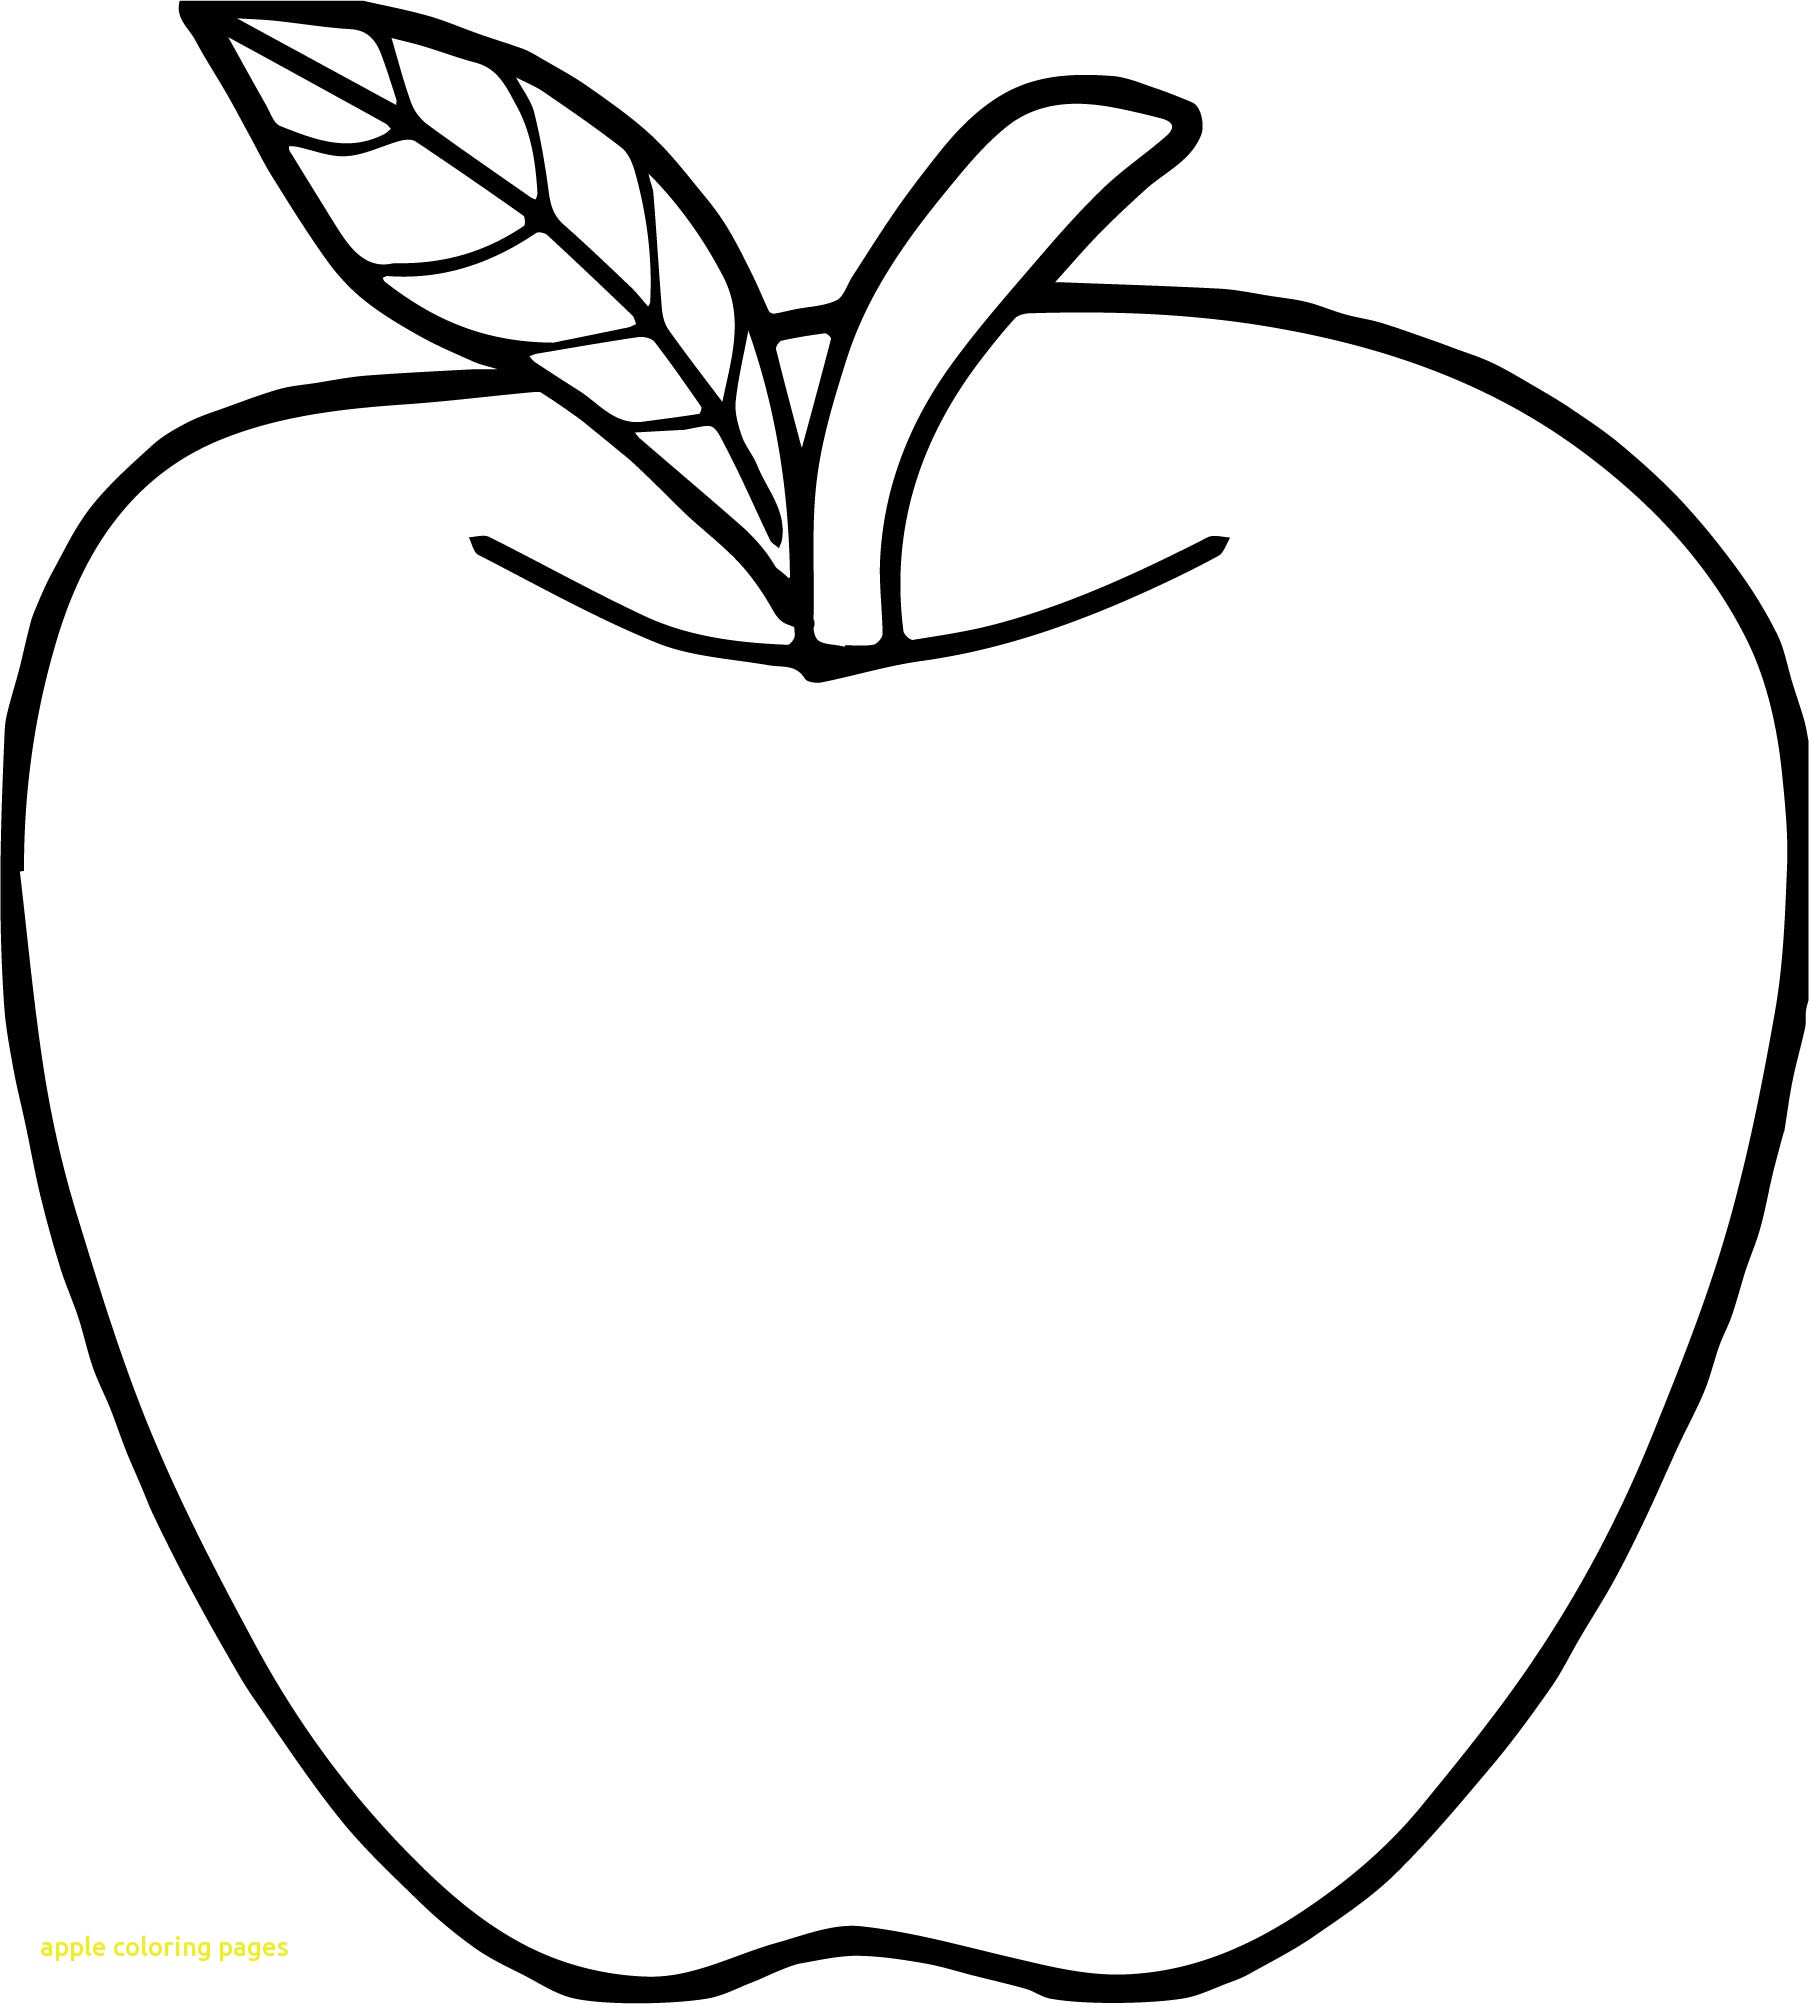 Apple Coloring Pages Printable.